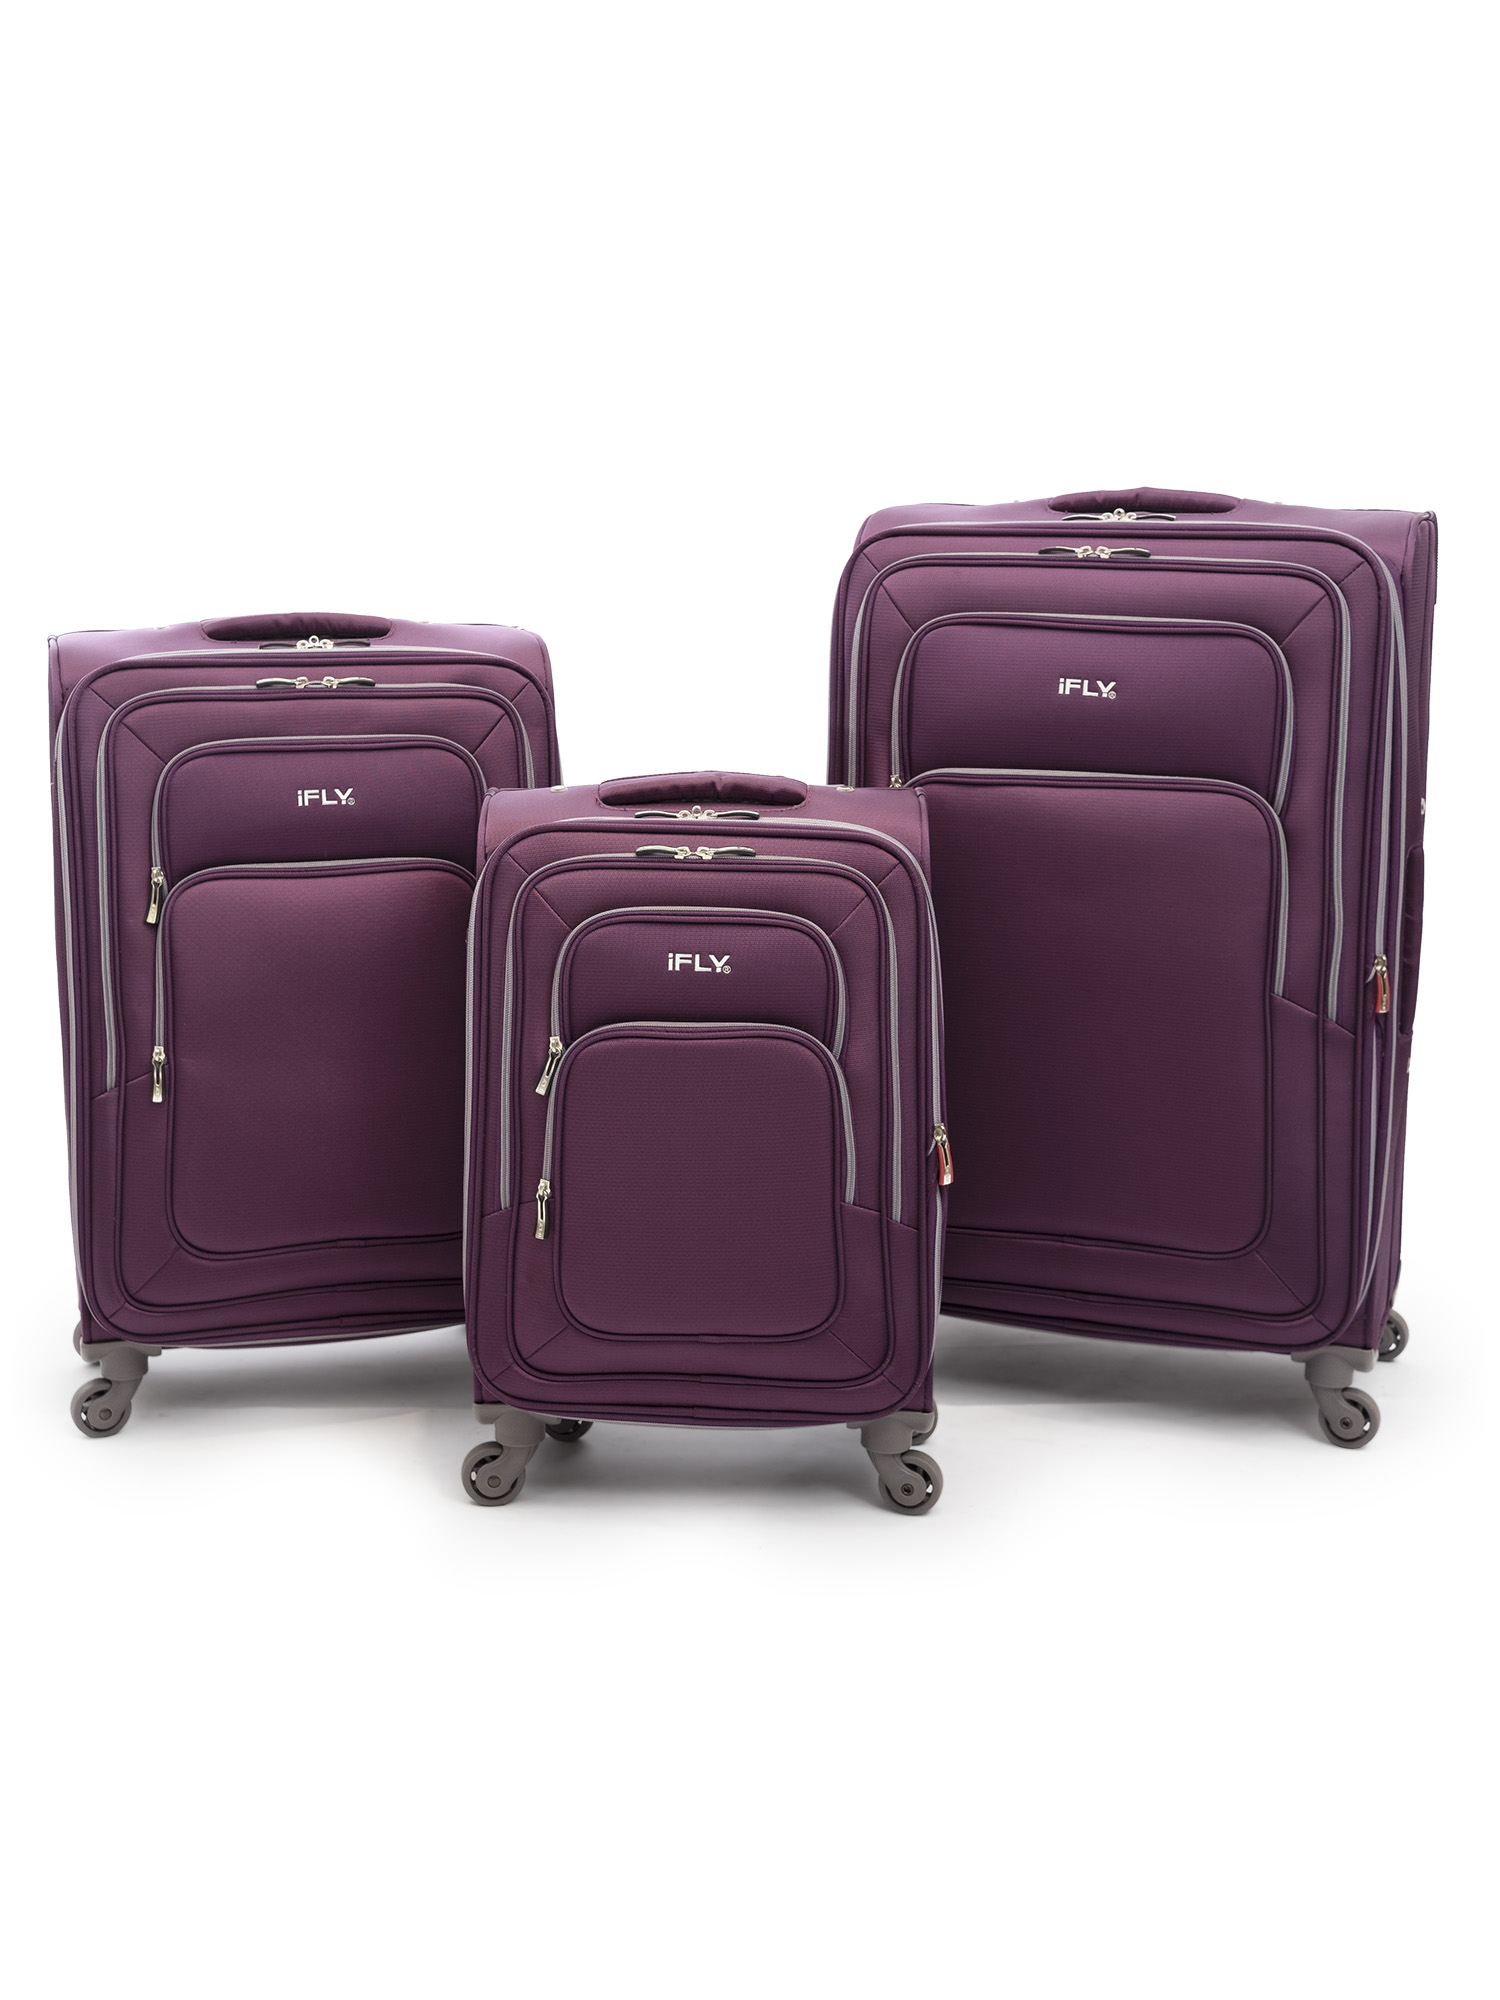 iFLY Soft Sided Luggage Jewel 3 piece set, Purple